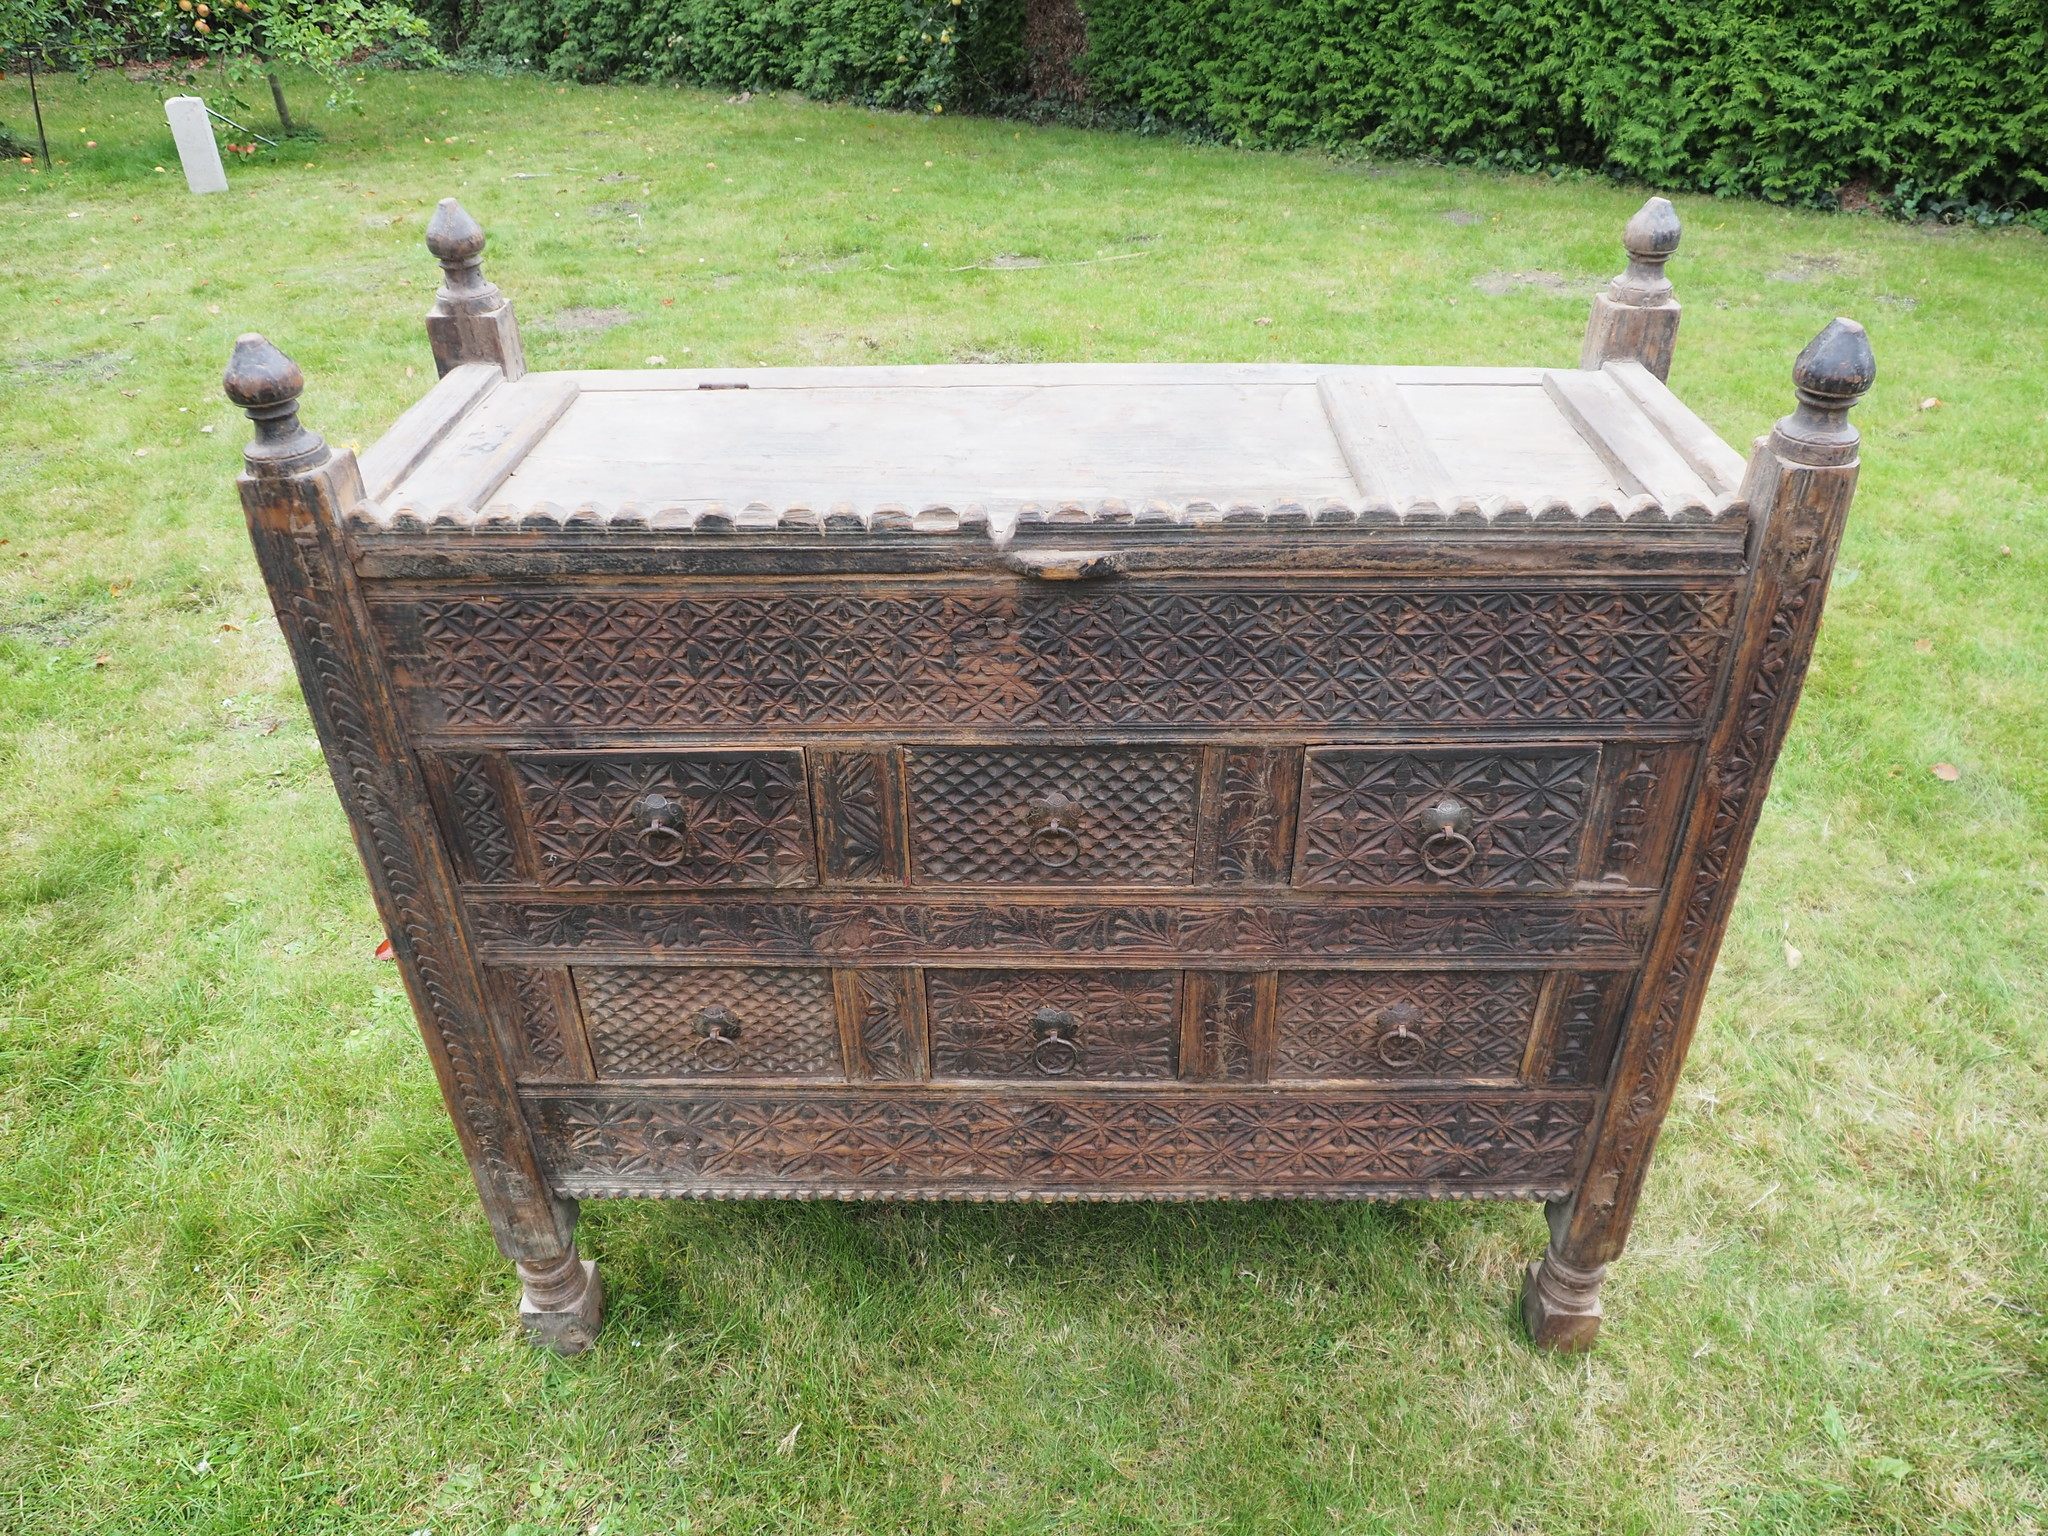 antique 19th century orient vintage cedar wood treasure Dowry Chest from Nuristan Afghanistan Pakistan (swat vally ) No:9